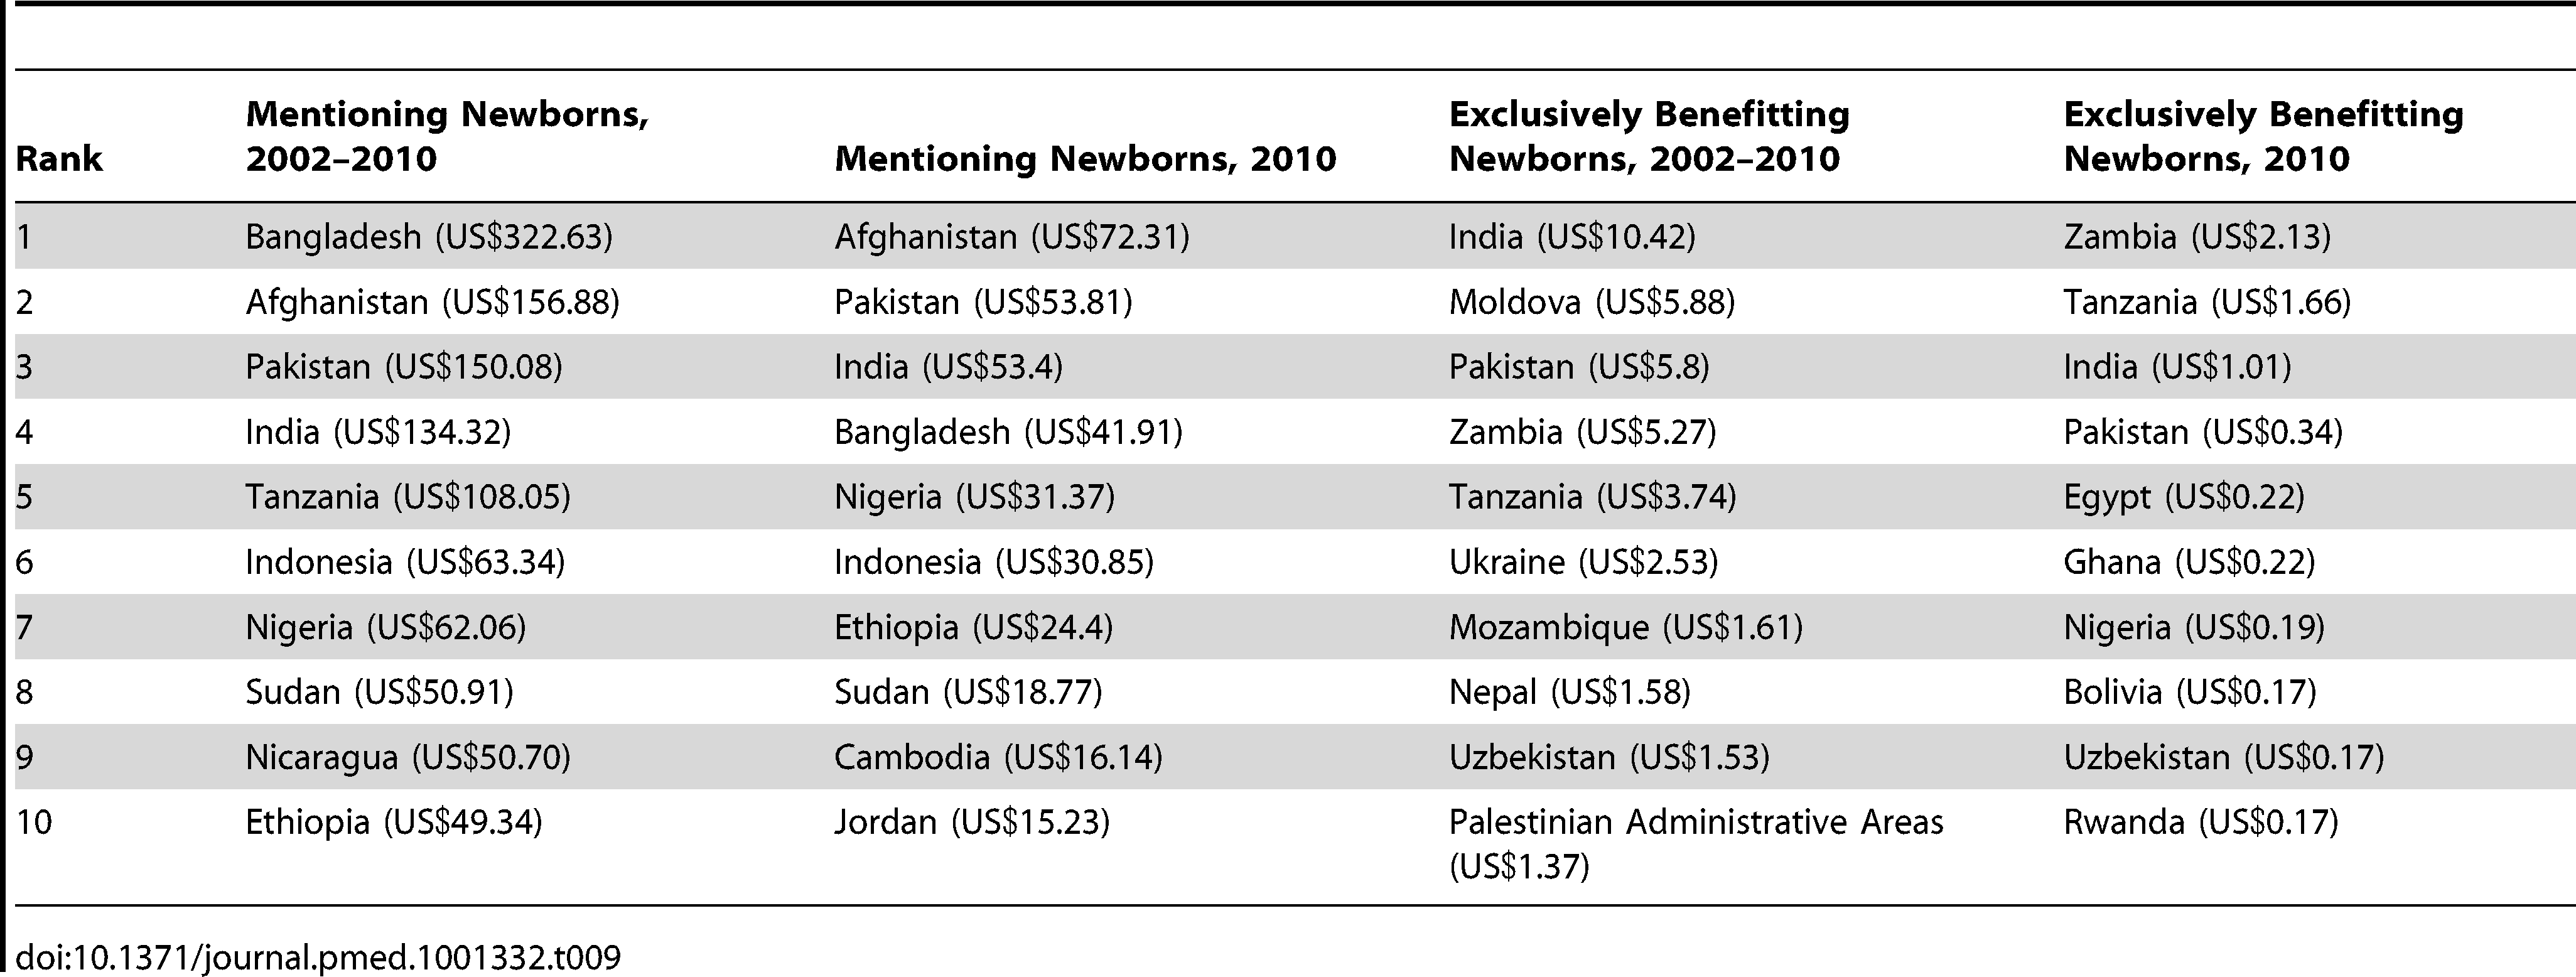 The leading country recipients of total aid mentioning and exclusively benefitting newborns over the period 2002–2010 and in 2010 (constant 2010 US$, millions).